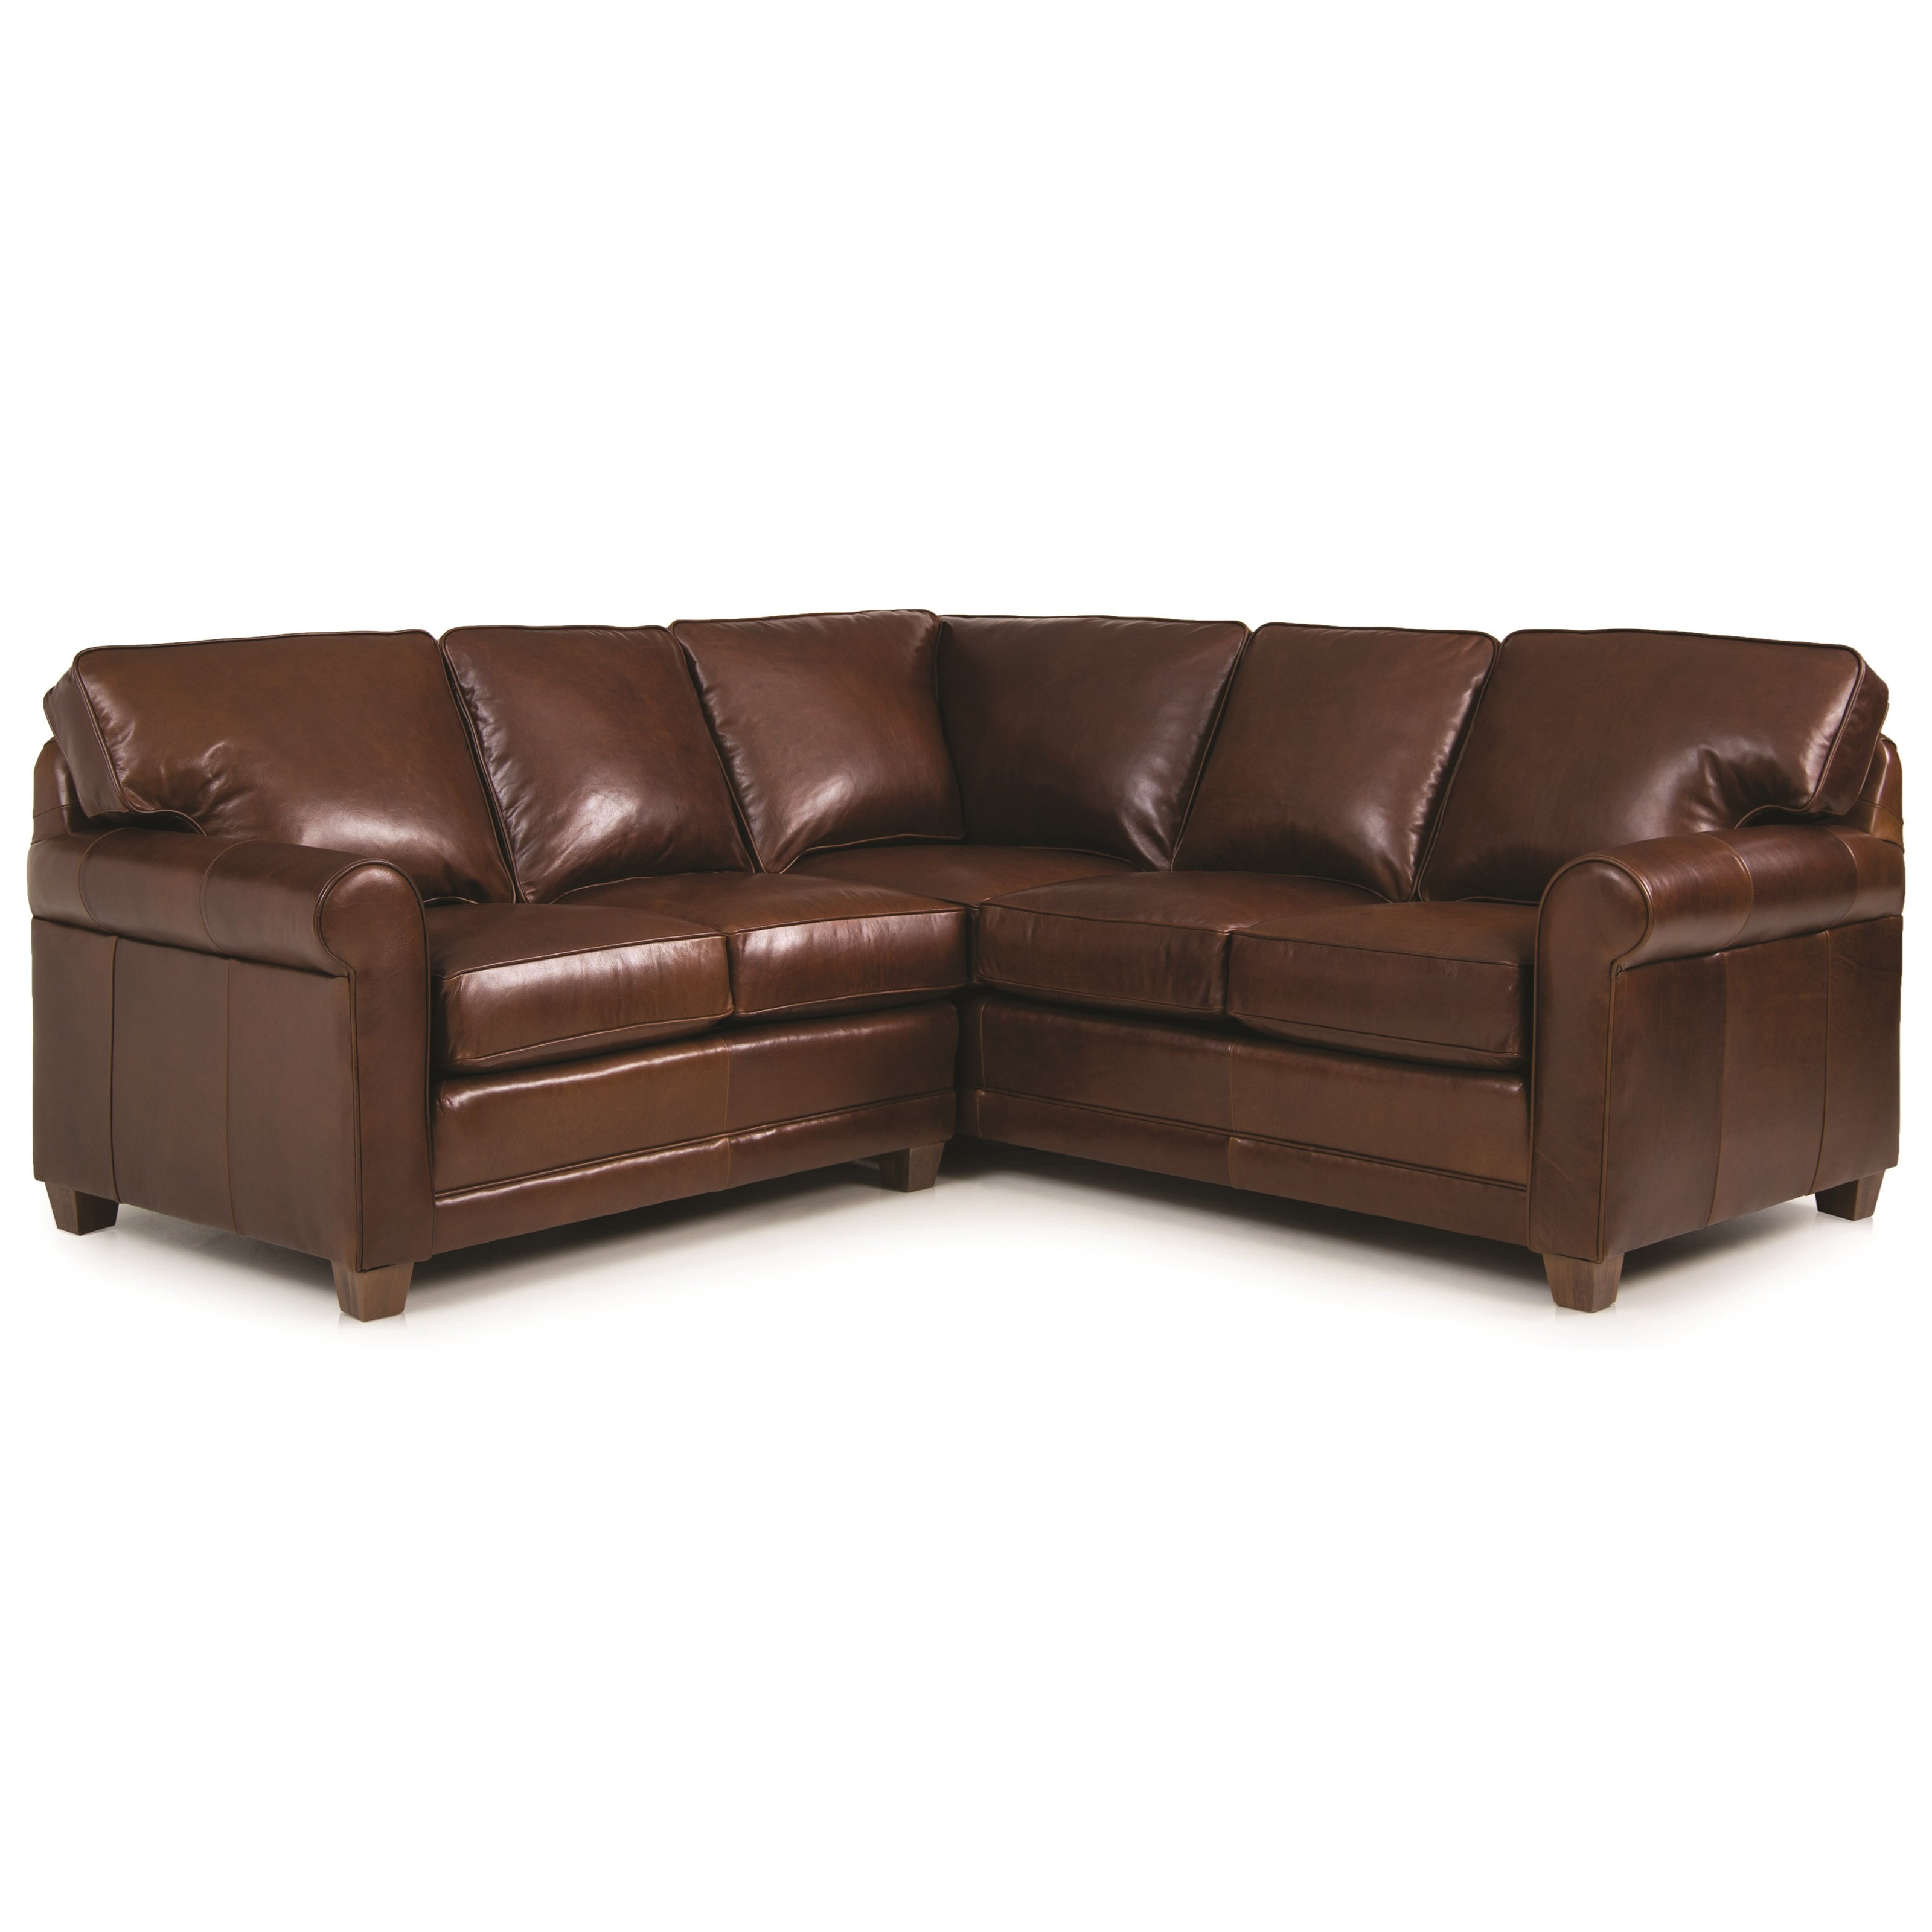 366 2-pc Sectional by Smith Brothers at Miller Home